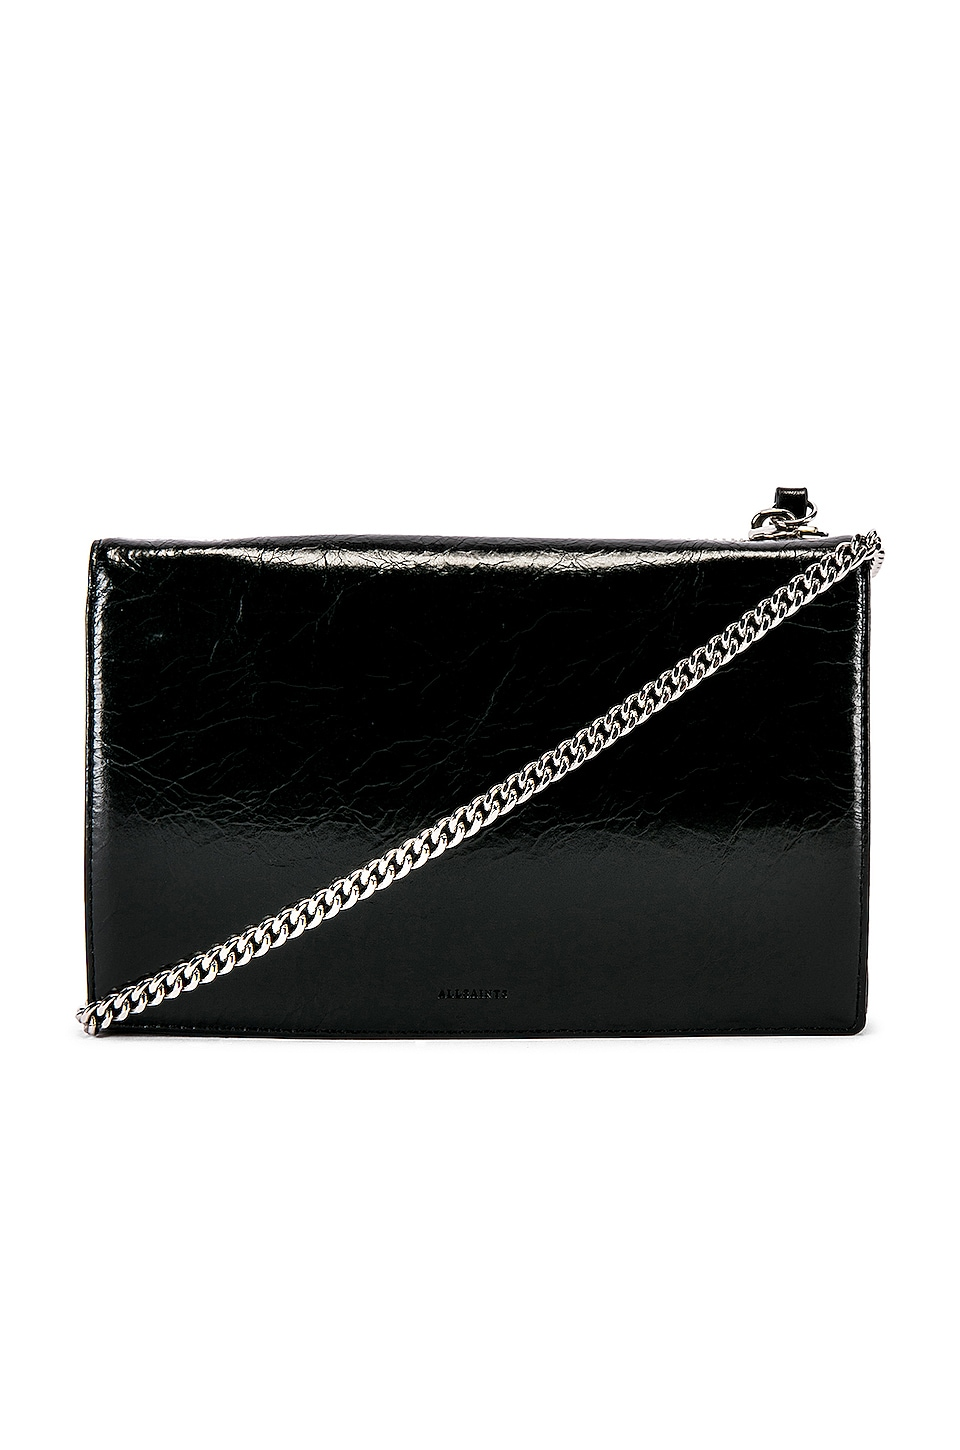 ALLSAINTS Fetch Chain Wallet in Black